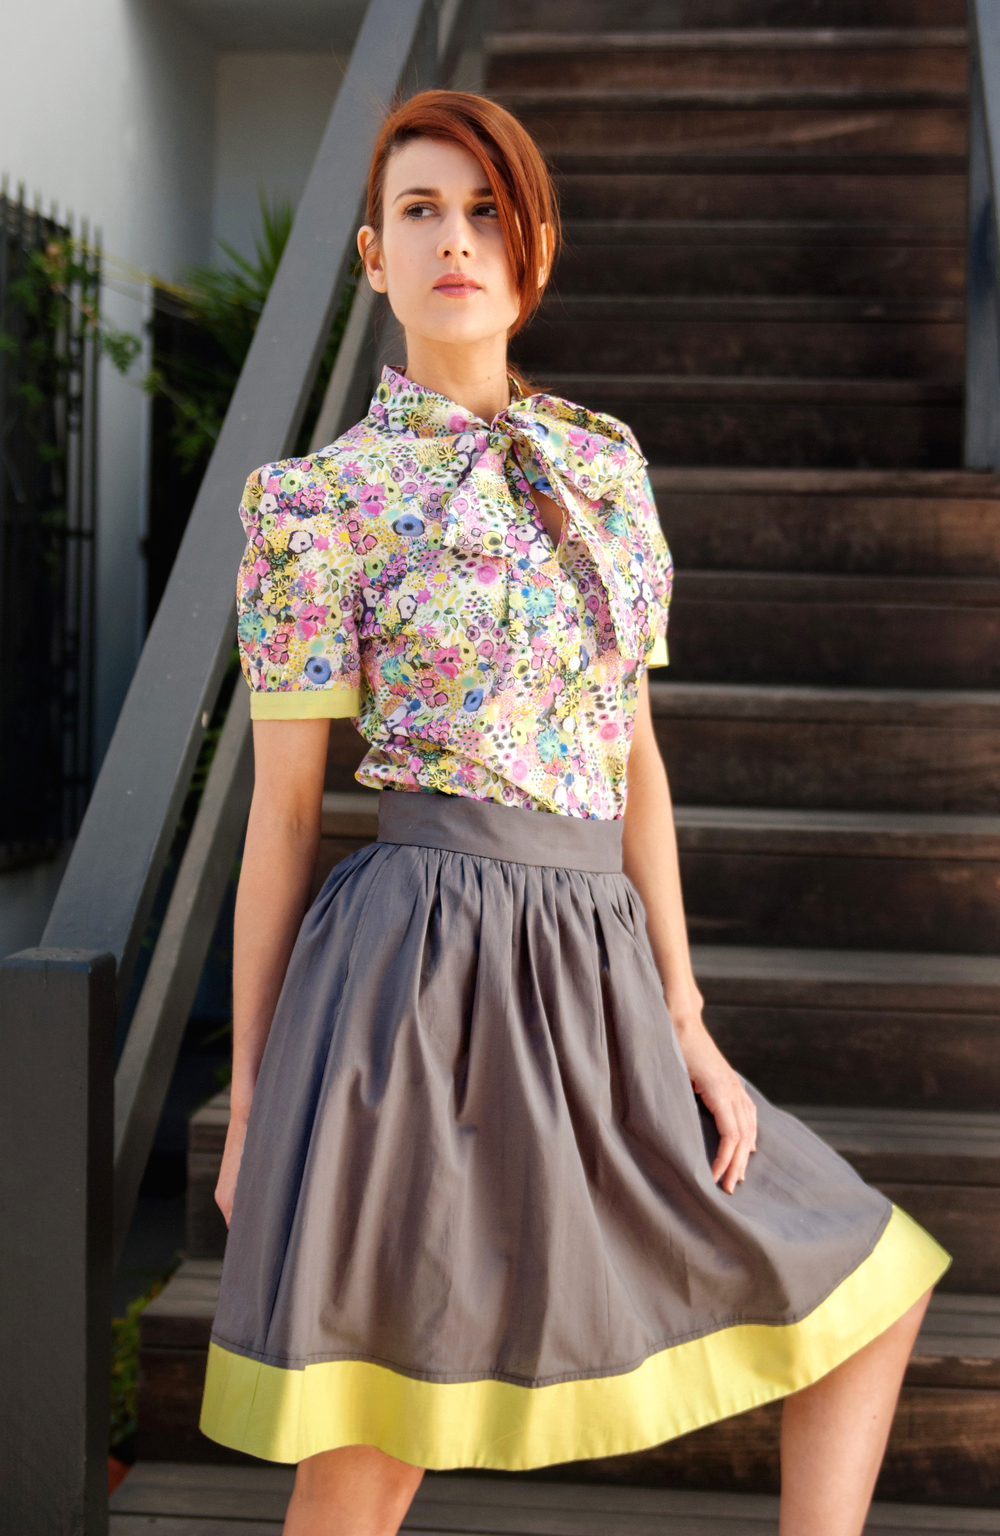 Tied Neck Blouse in Liberty Print & Dirndl Skirt with Pockets